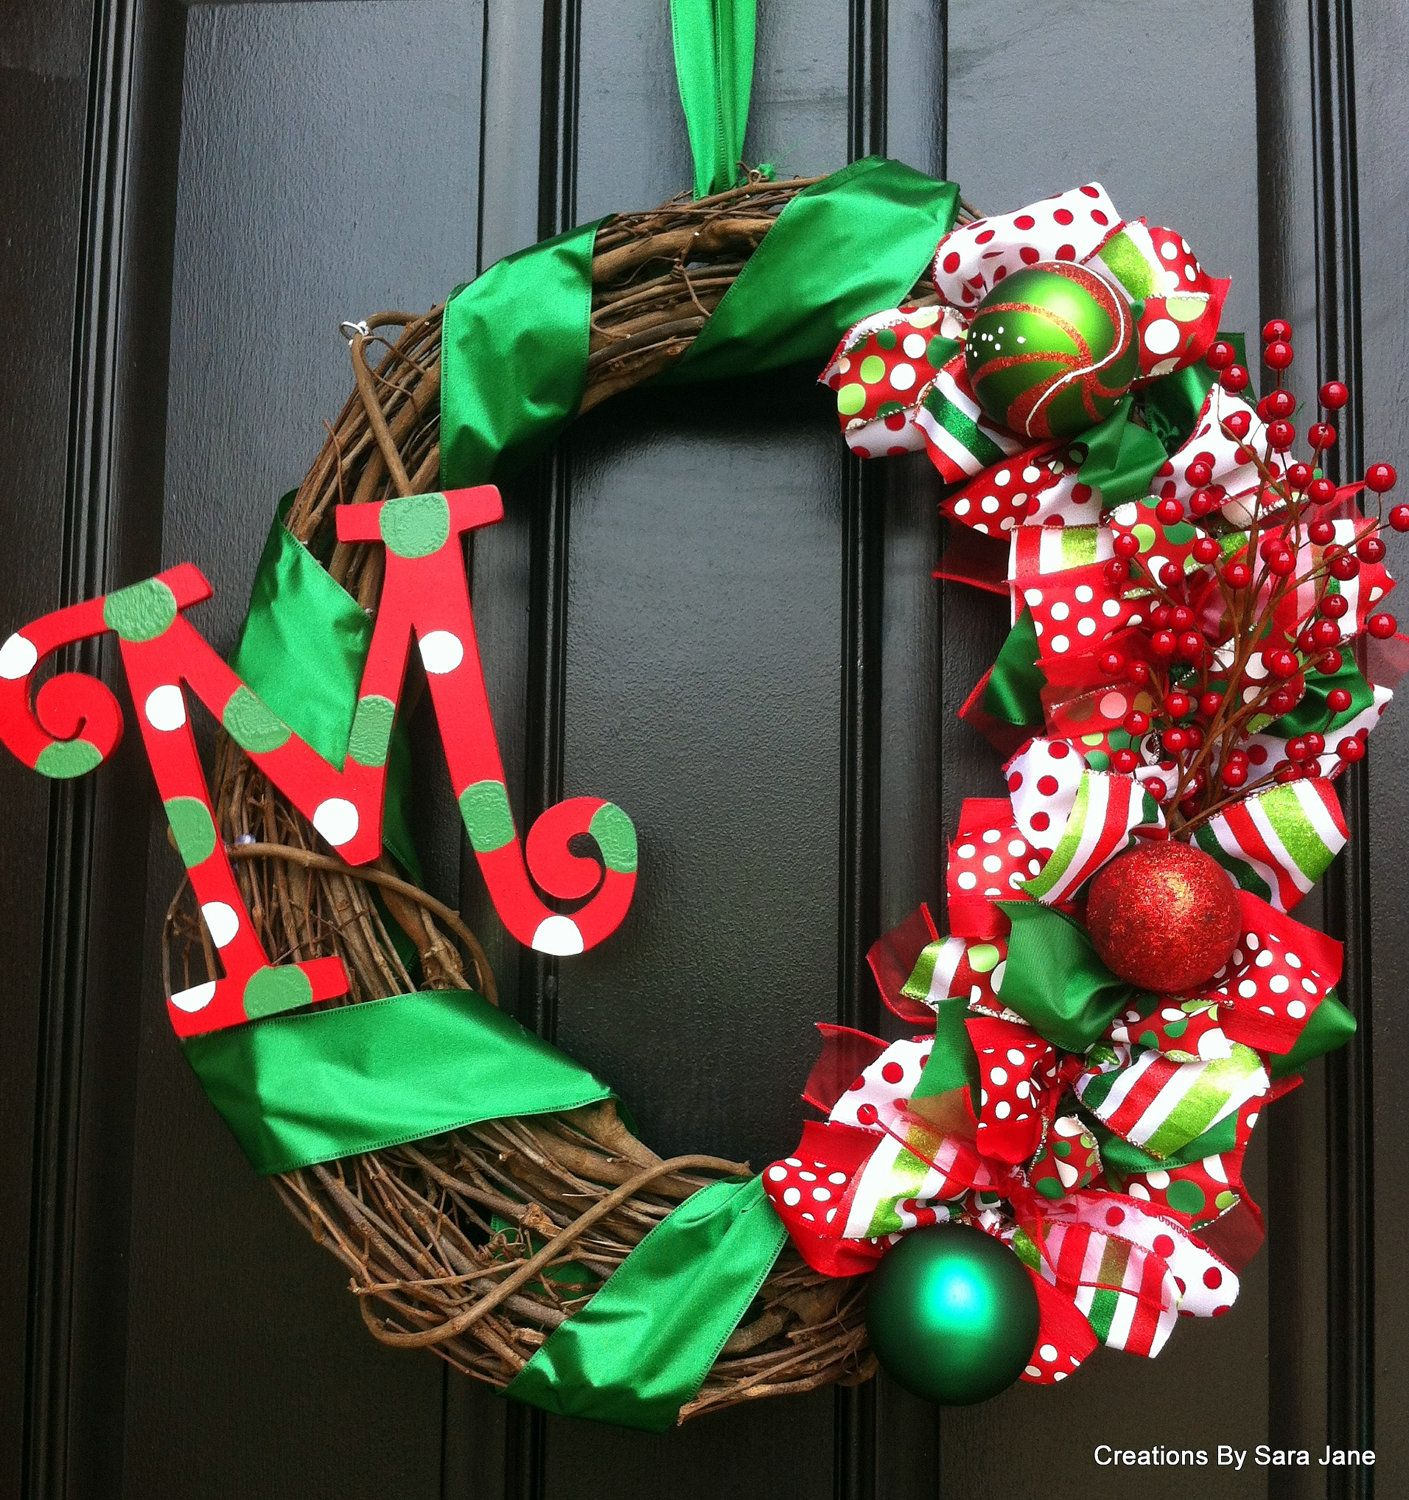 25 Best Ideas About Outdoor Christmas Trees On Pinterest: Best 25+ Whimsical Christmas Ideas On Pinterest